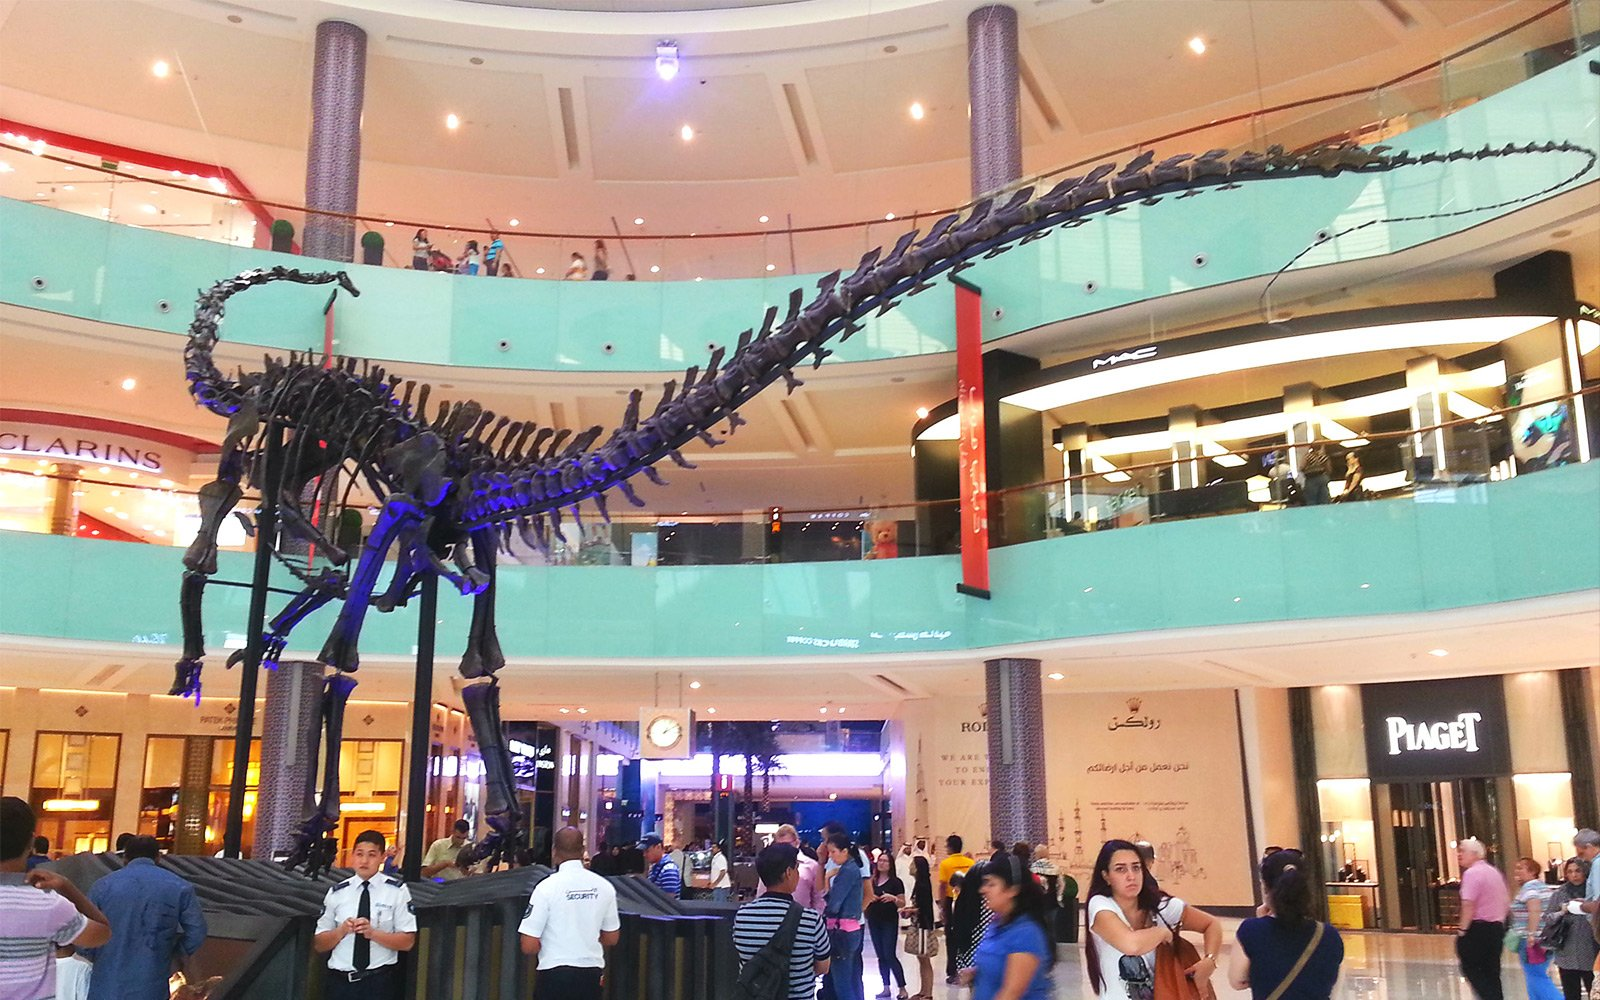 How to see a skeleton of a gigantic 155,000,000-year-old dinosaur in Dubai